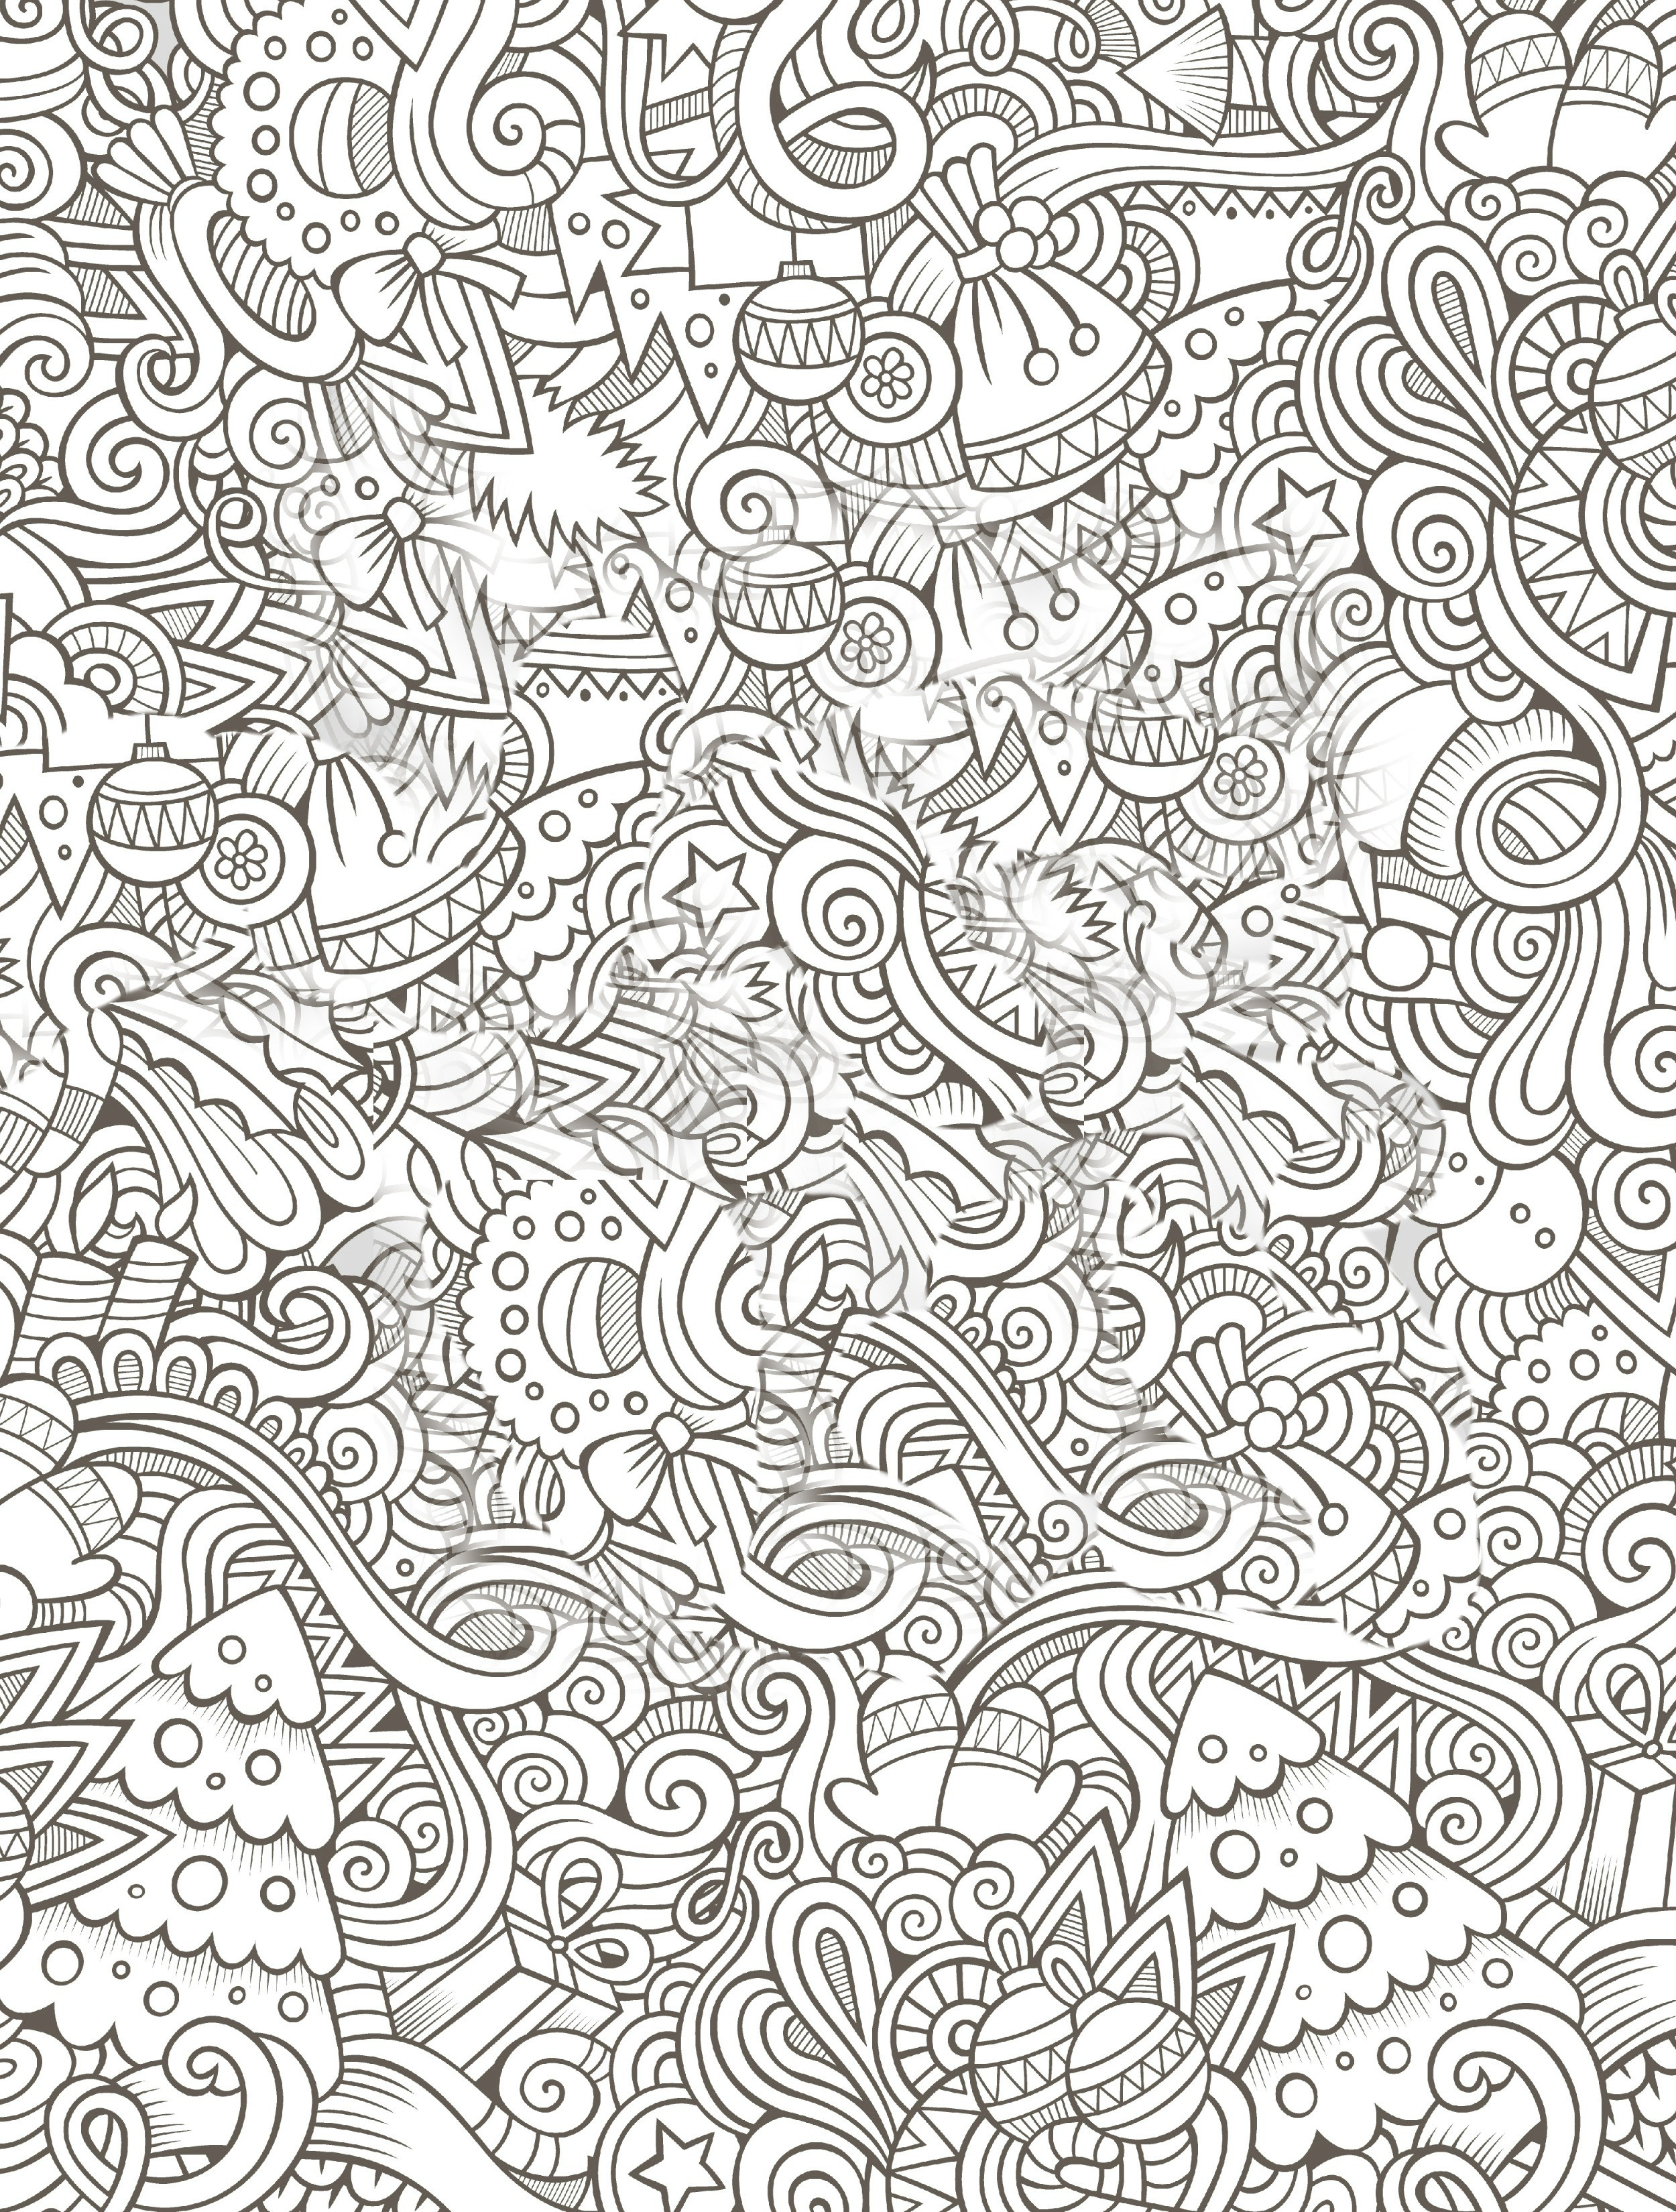 Coloring Pages For Adults To Print  10 Free Printable Holiday Adult Coloring Pages